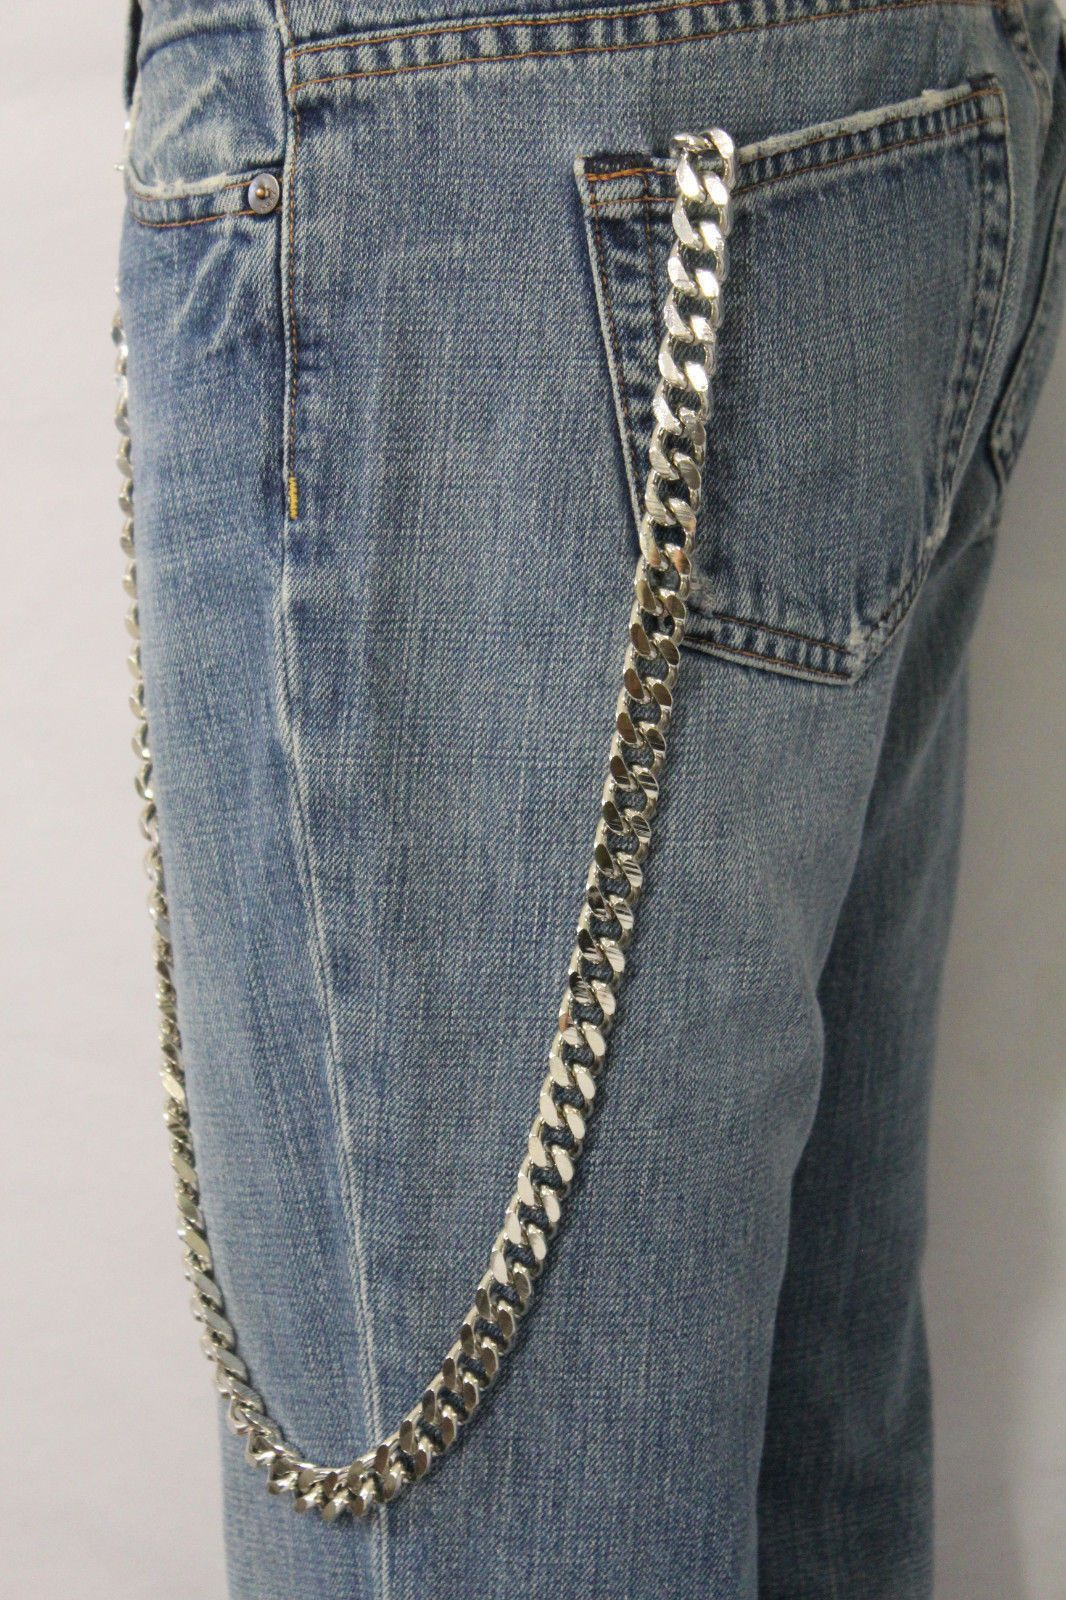 Silver Metal Wallet Chains KeyChain Strong Chunky Links Long Strand Biker Jeans